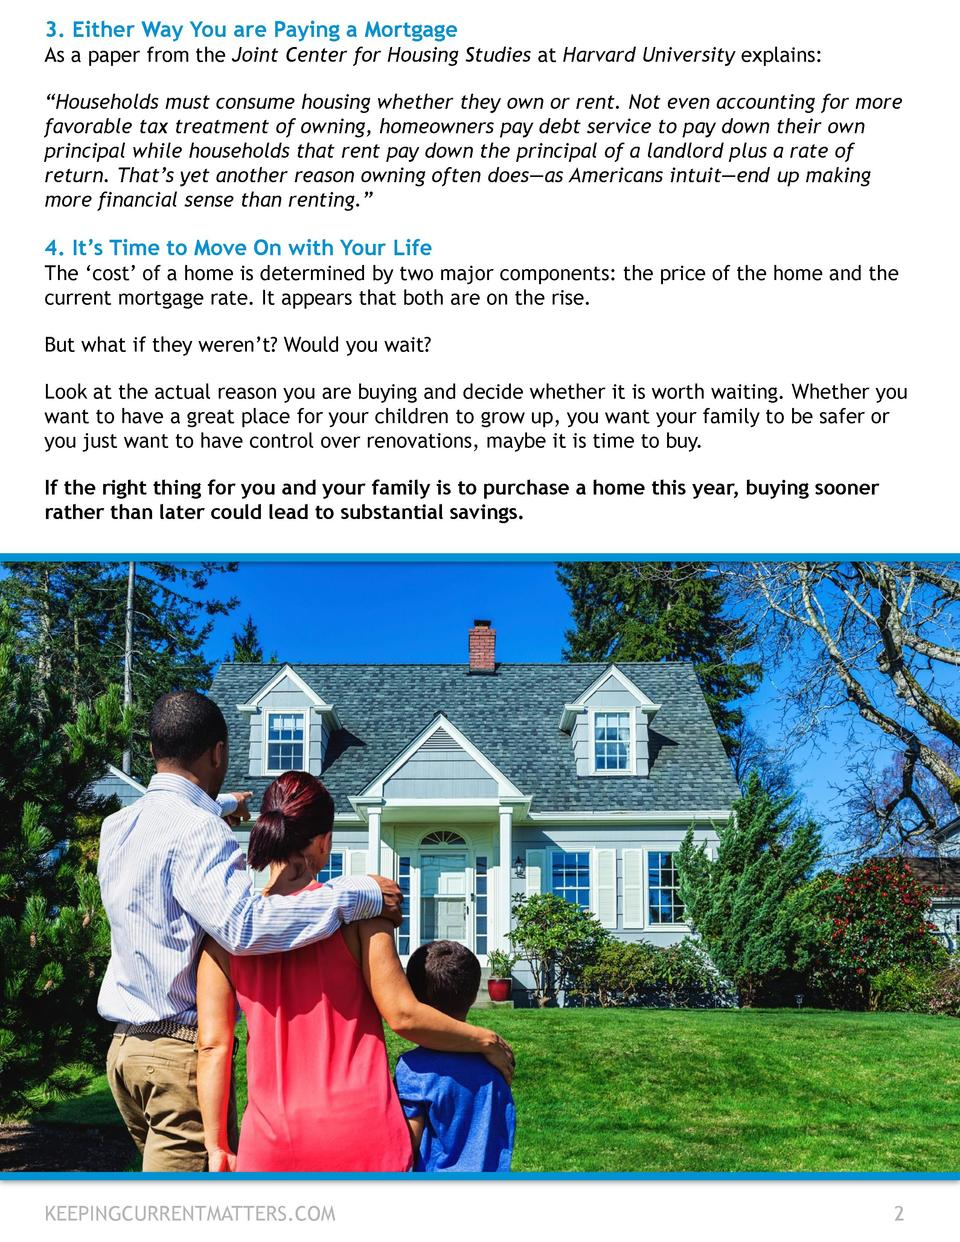 3. Either Way You are Paying a Mortgage As a paper from the Joint Center for Housing Studies at Harvard University explain...